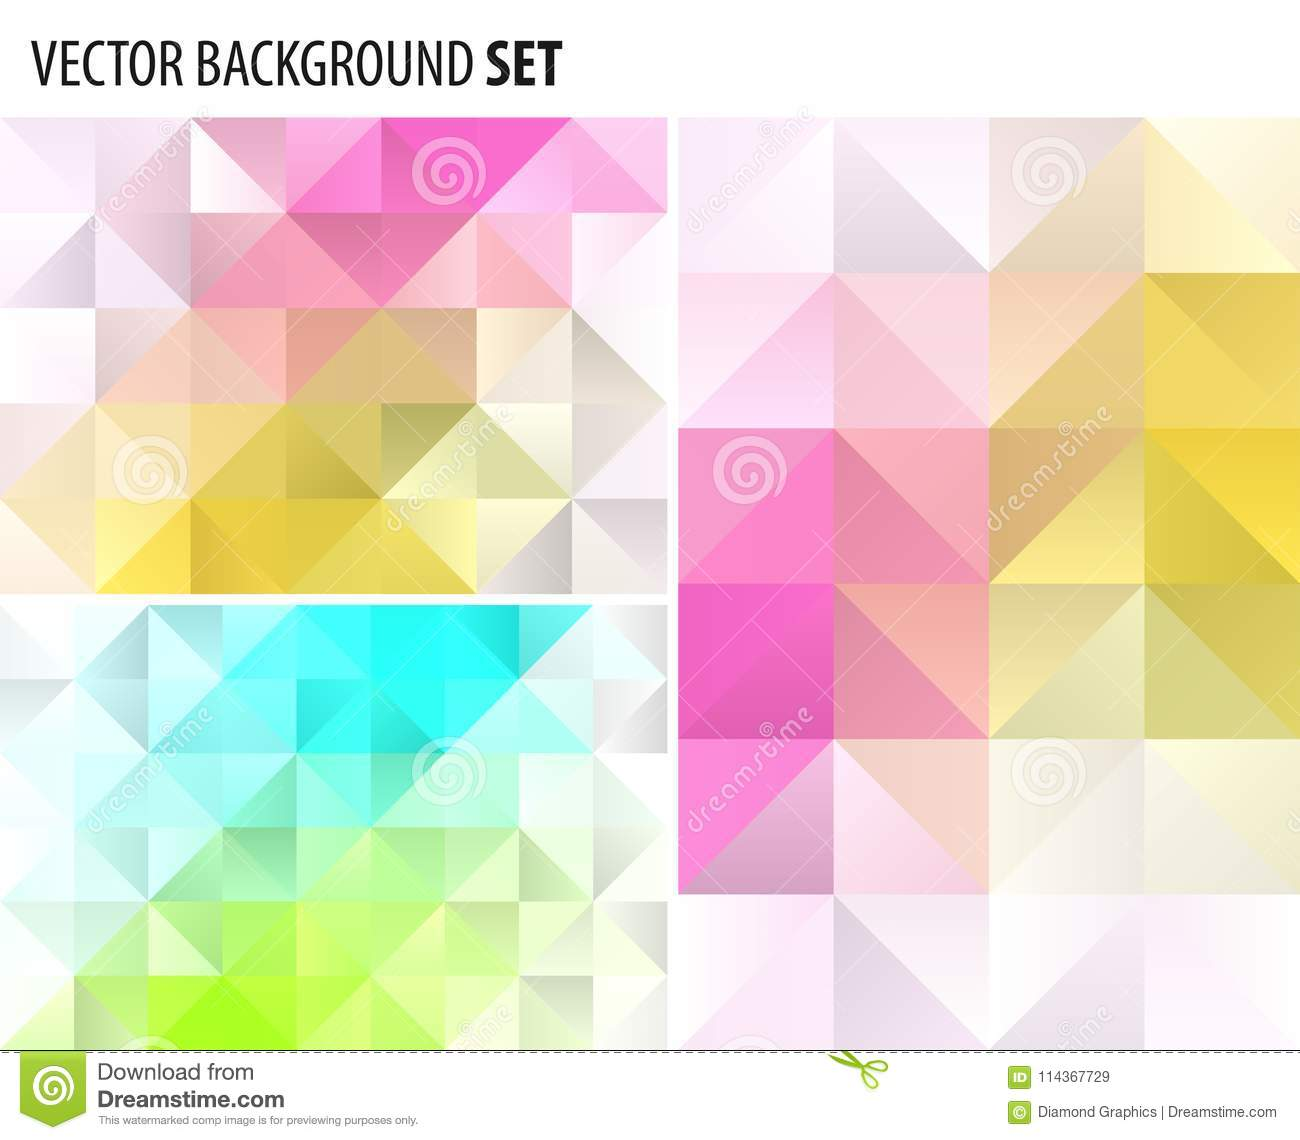 Set of Abstract polygonal background design, vector elements for graphic template.